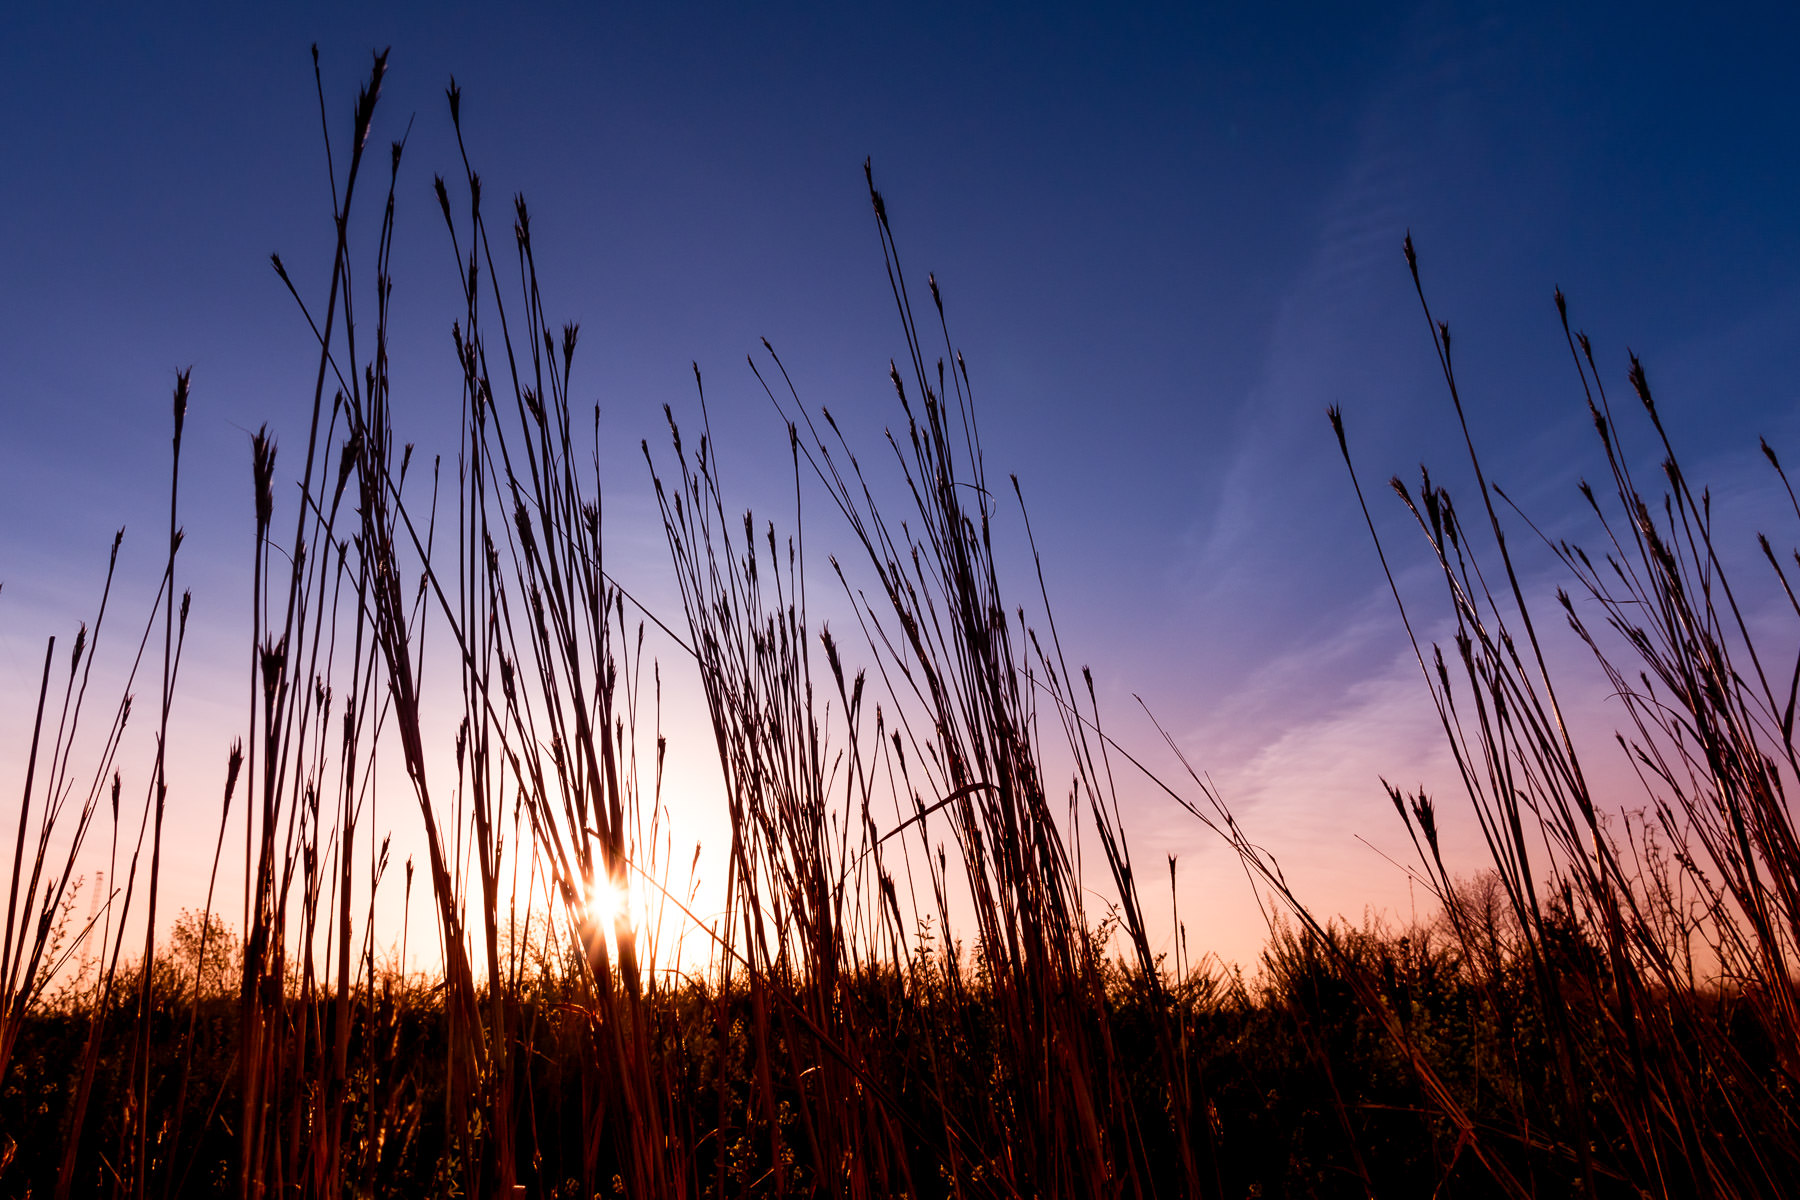 The sun rises on tall grass at Fort Worth, Texas' Tandy Hills Natural Area.